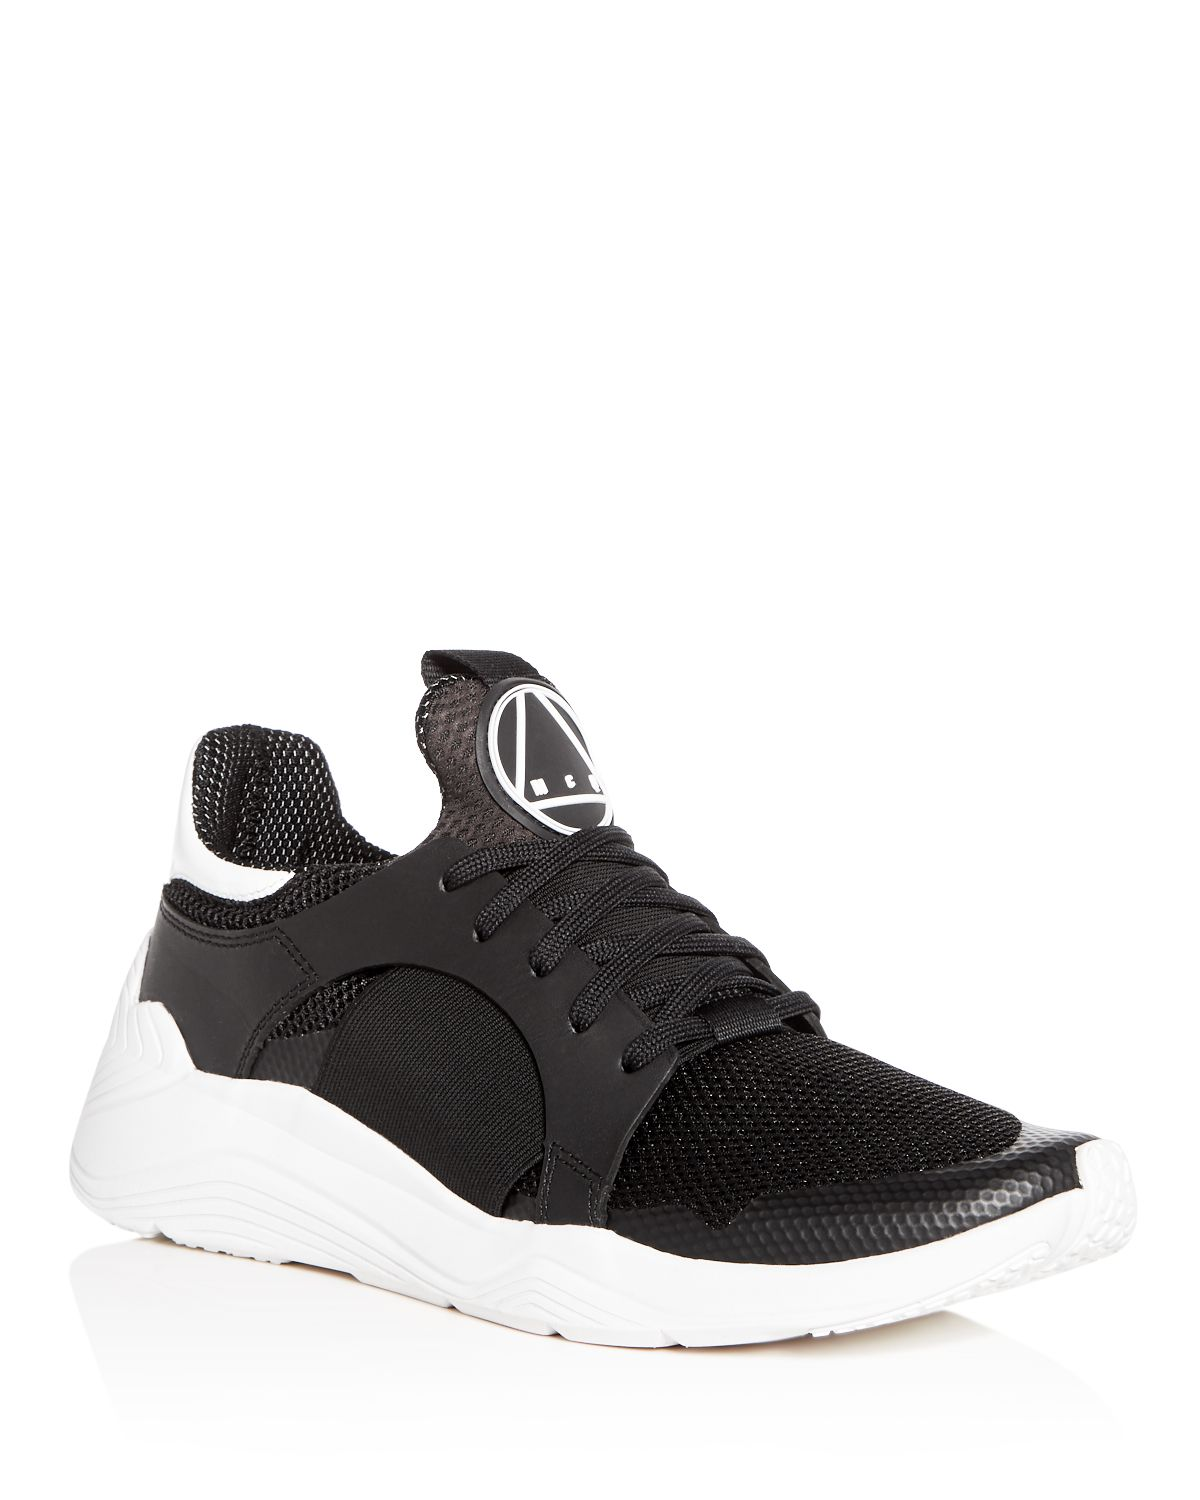 Alexander McQueen Alexander McQueen Men's Gishiki Techsole Lace Up Sneakers